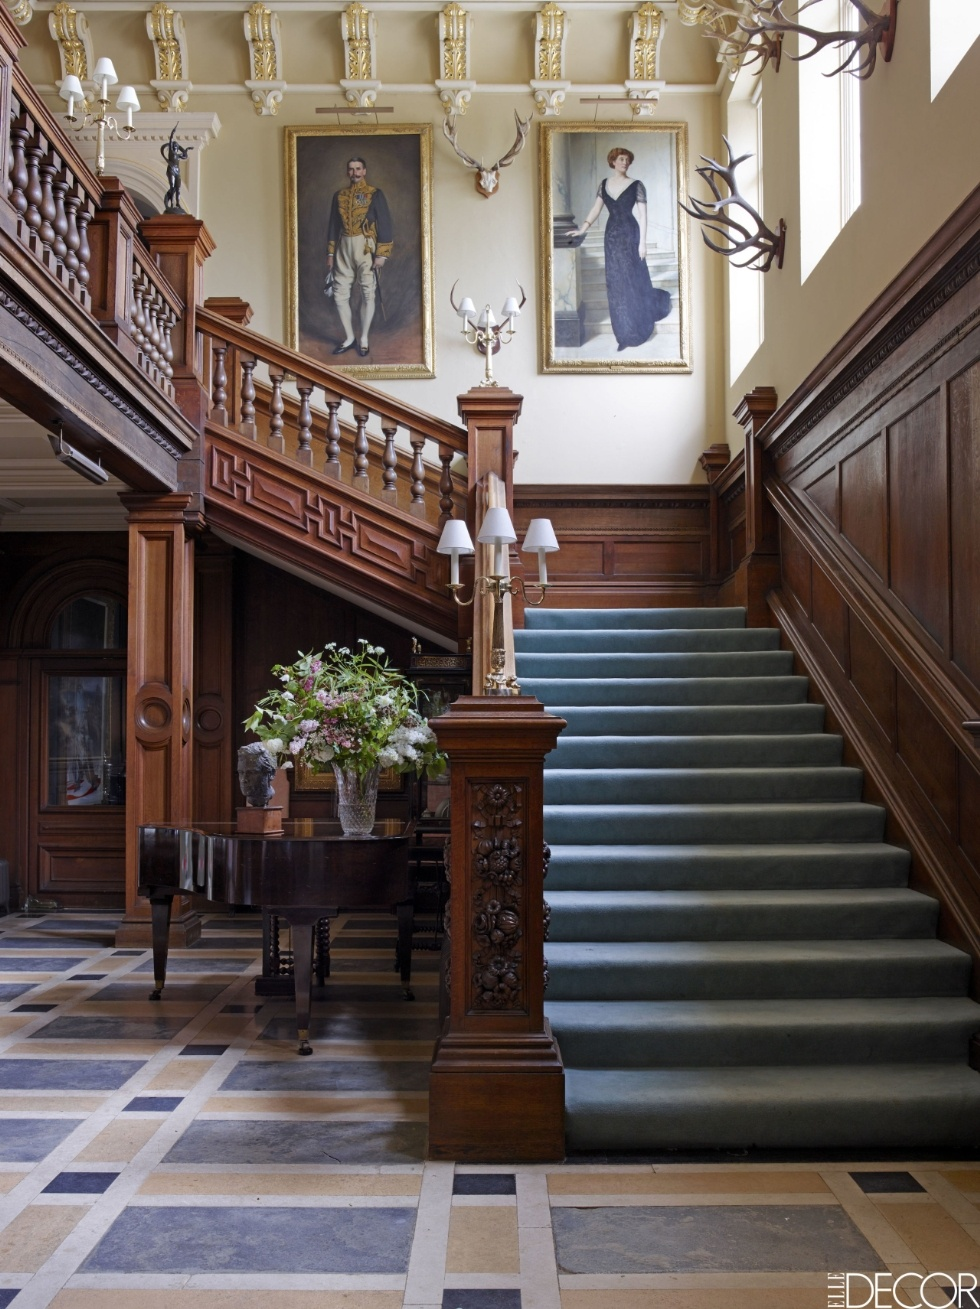 Loving the staircase in this English Estate. I love the color of the runner against the rich wood.